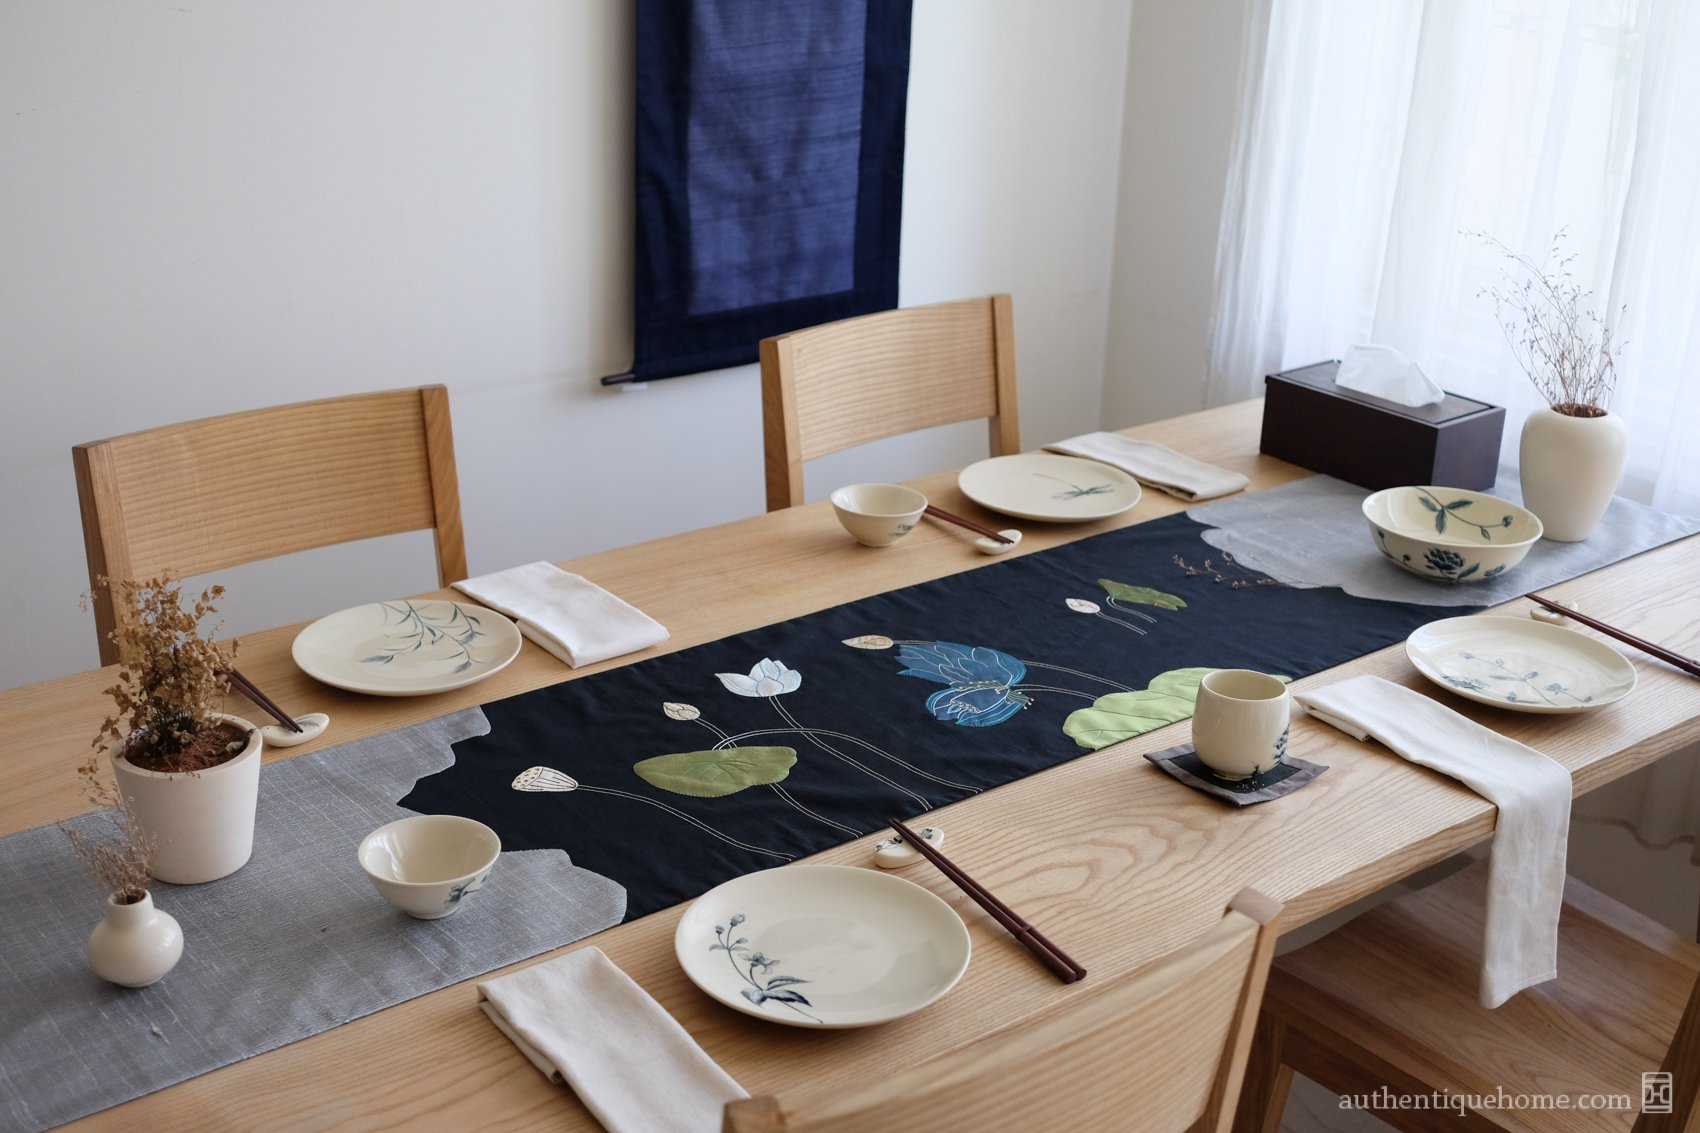 Decorative Table Runner   Autumn Lotus Pond Grey